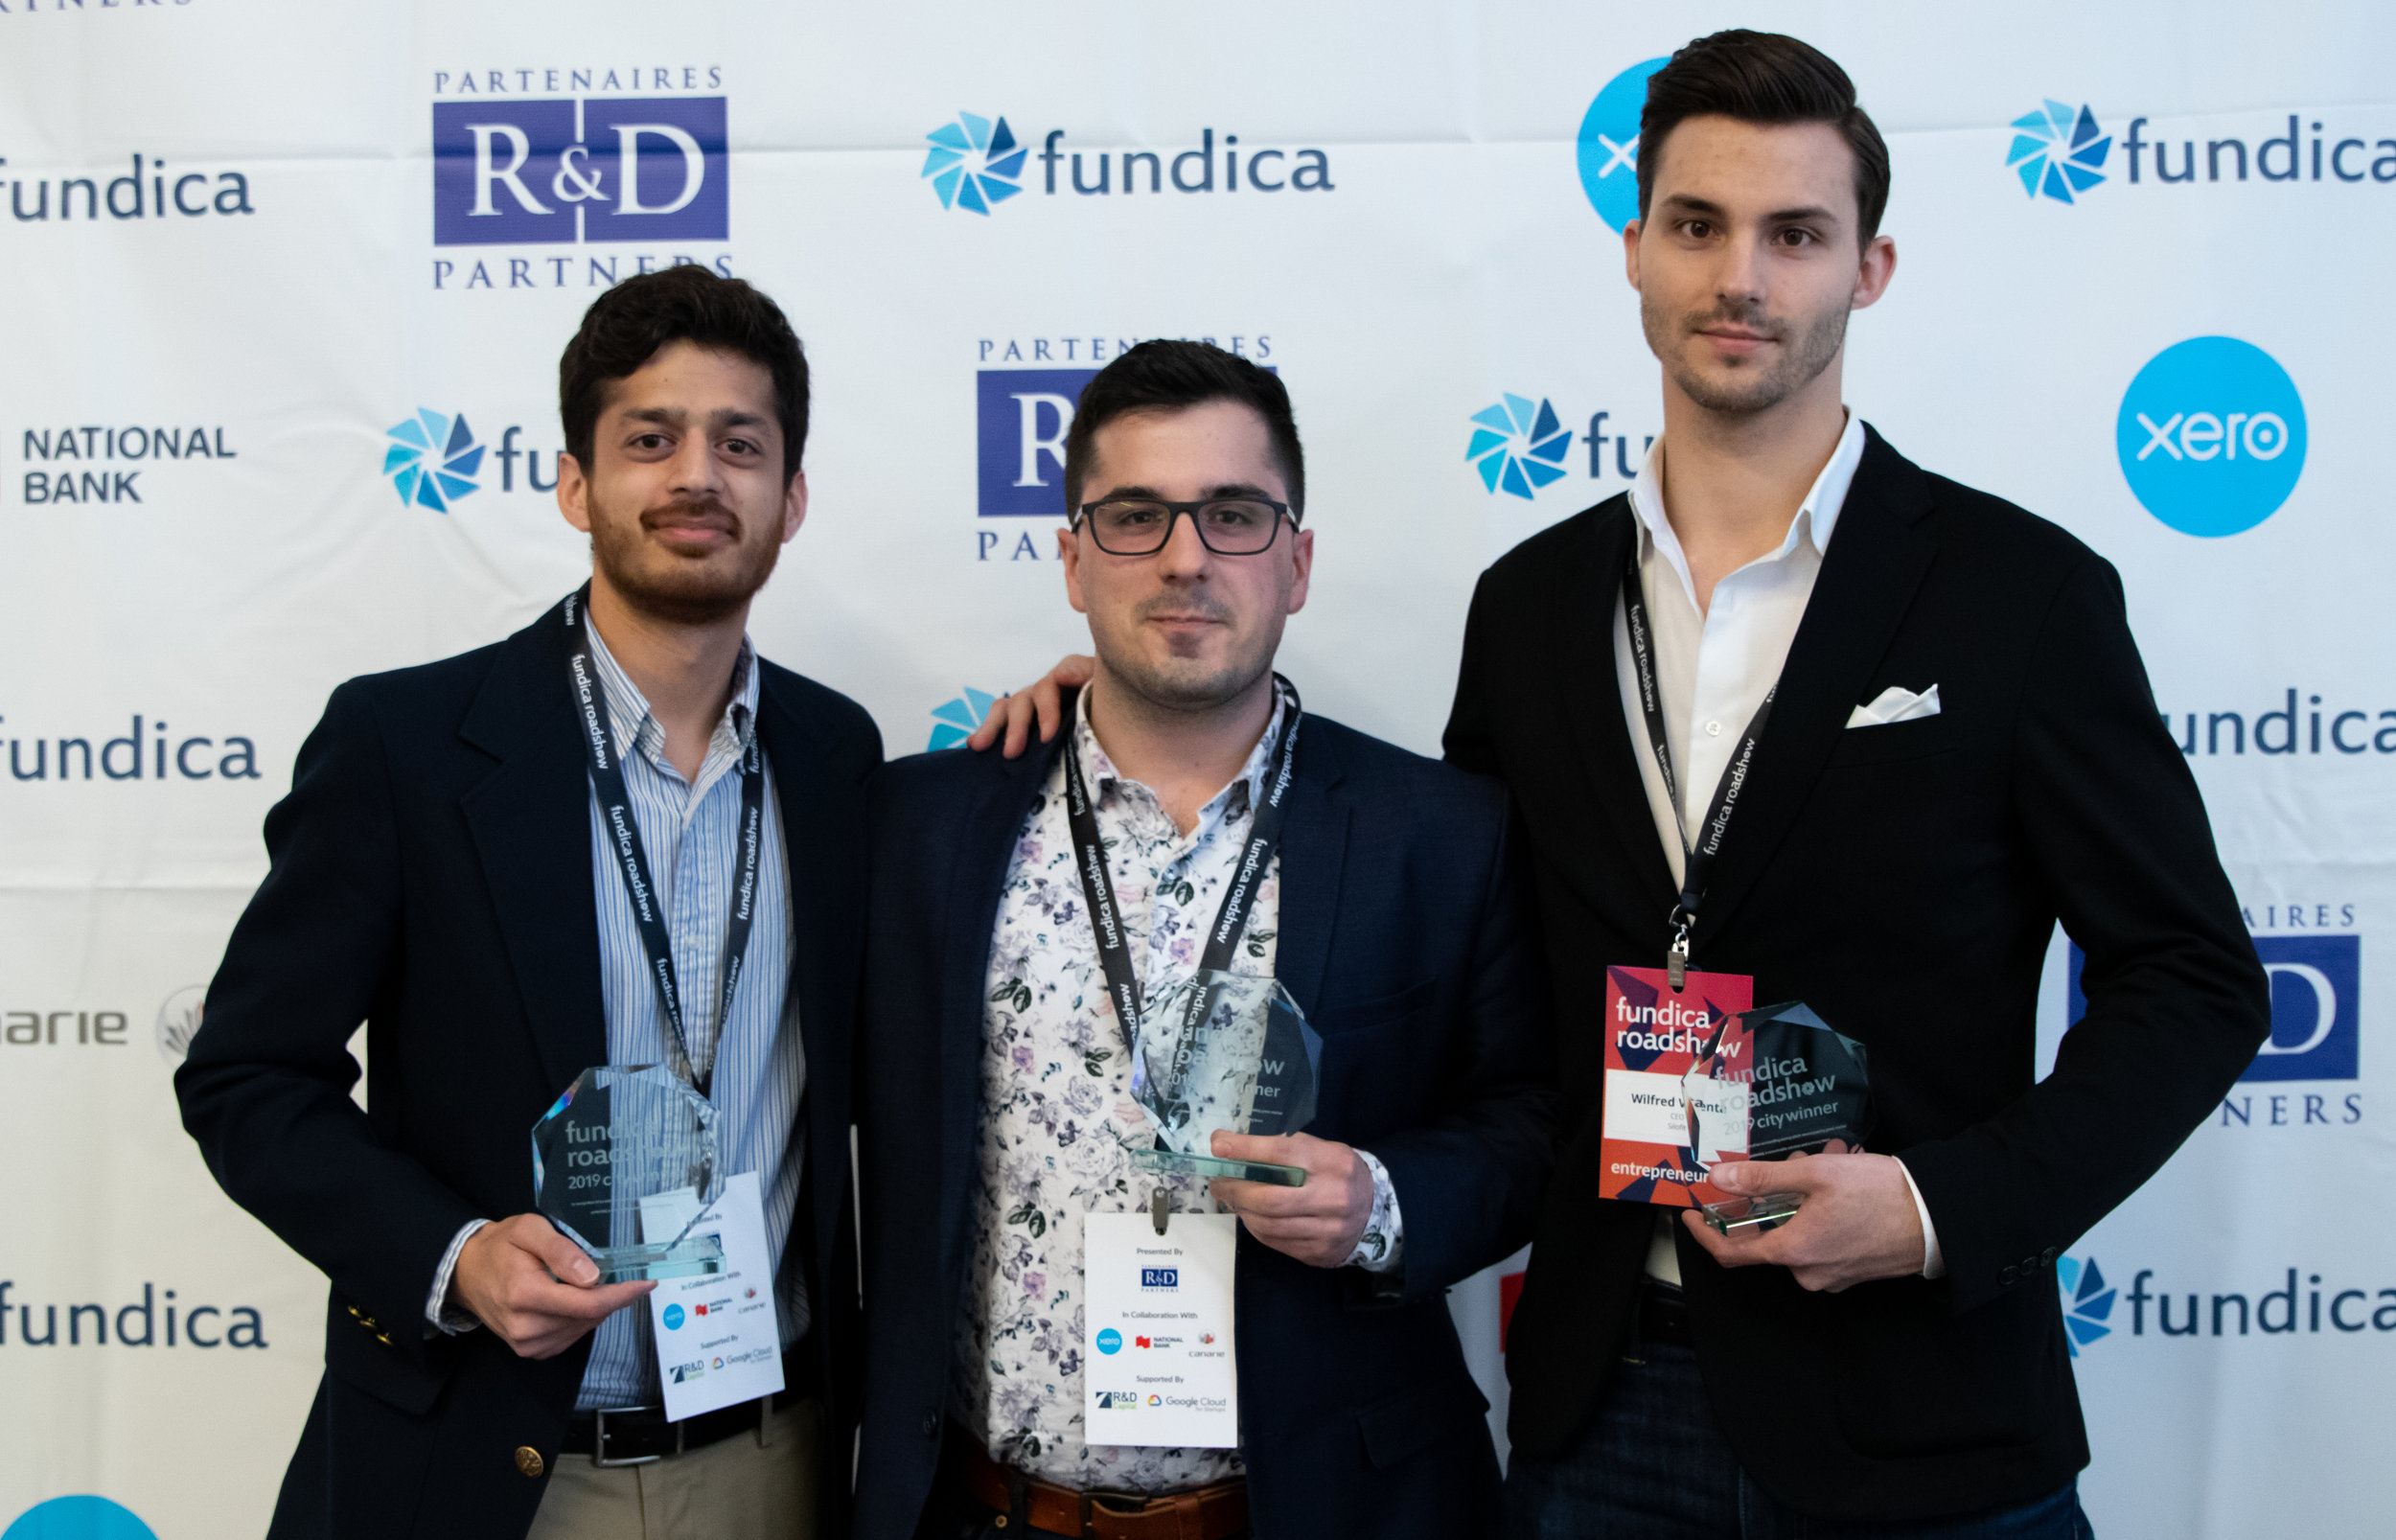 The Montreal city winners from left to right: Sahil Gupta, co-founder of Soundskrit, William St-Pierre, CEO of Mechasys, and Wilfred Valenta, CEO and Co-Founder of Silofit.